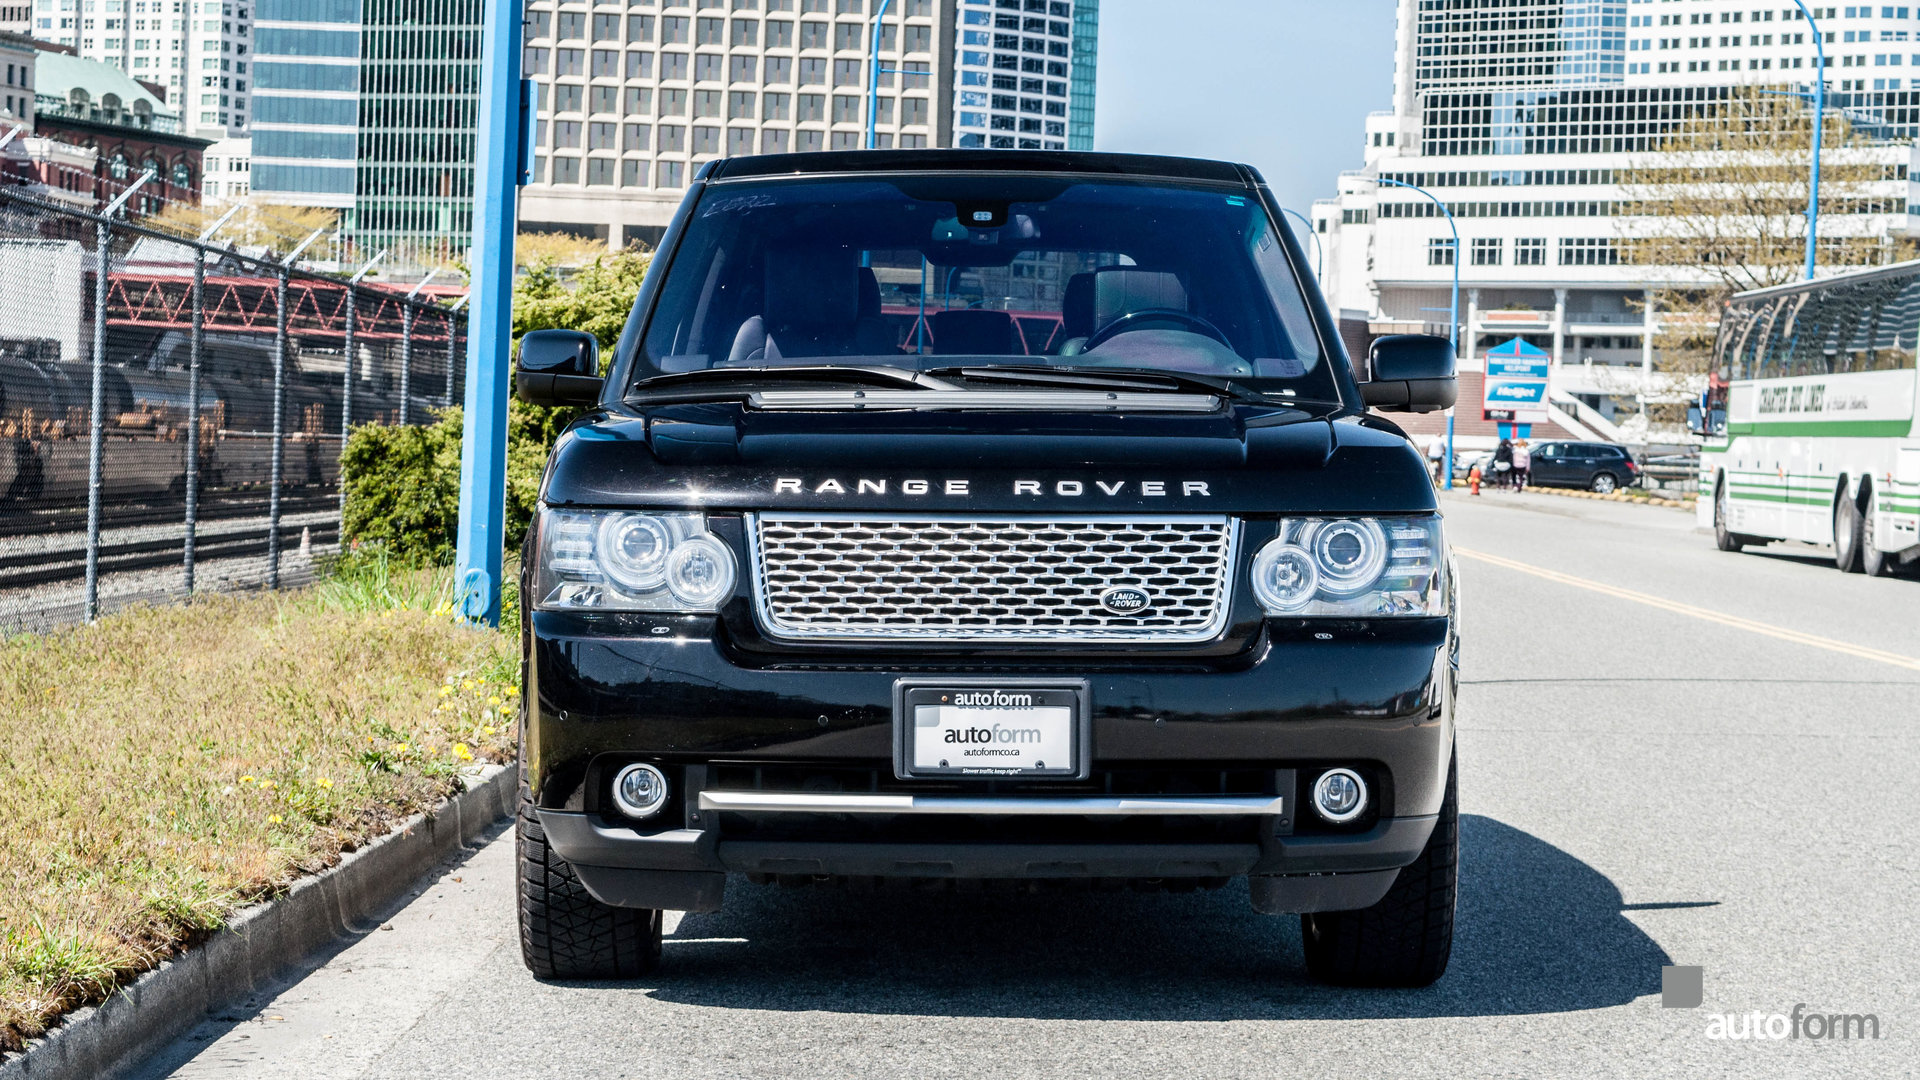 https://dealeraccelerate-all.s3.amazonaws.com/af/images/1/2/0/0/1200/13064eab61369_hd_2011-land-rover-range-rover-autobiography-black.jpg